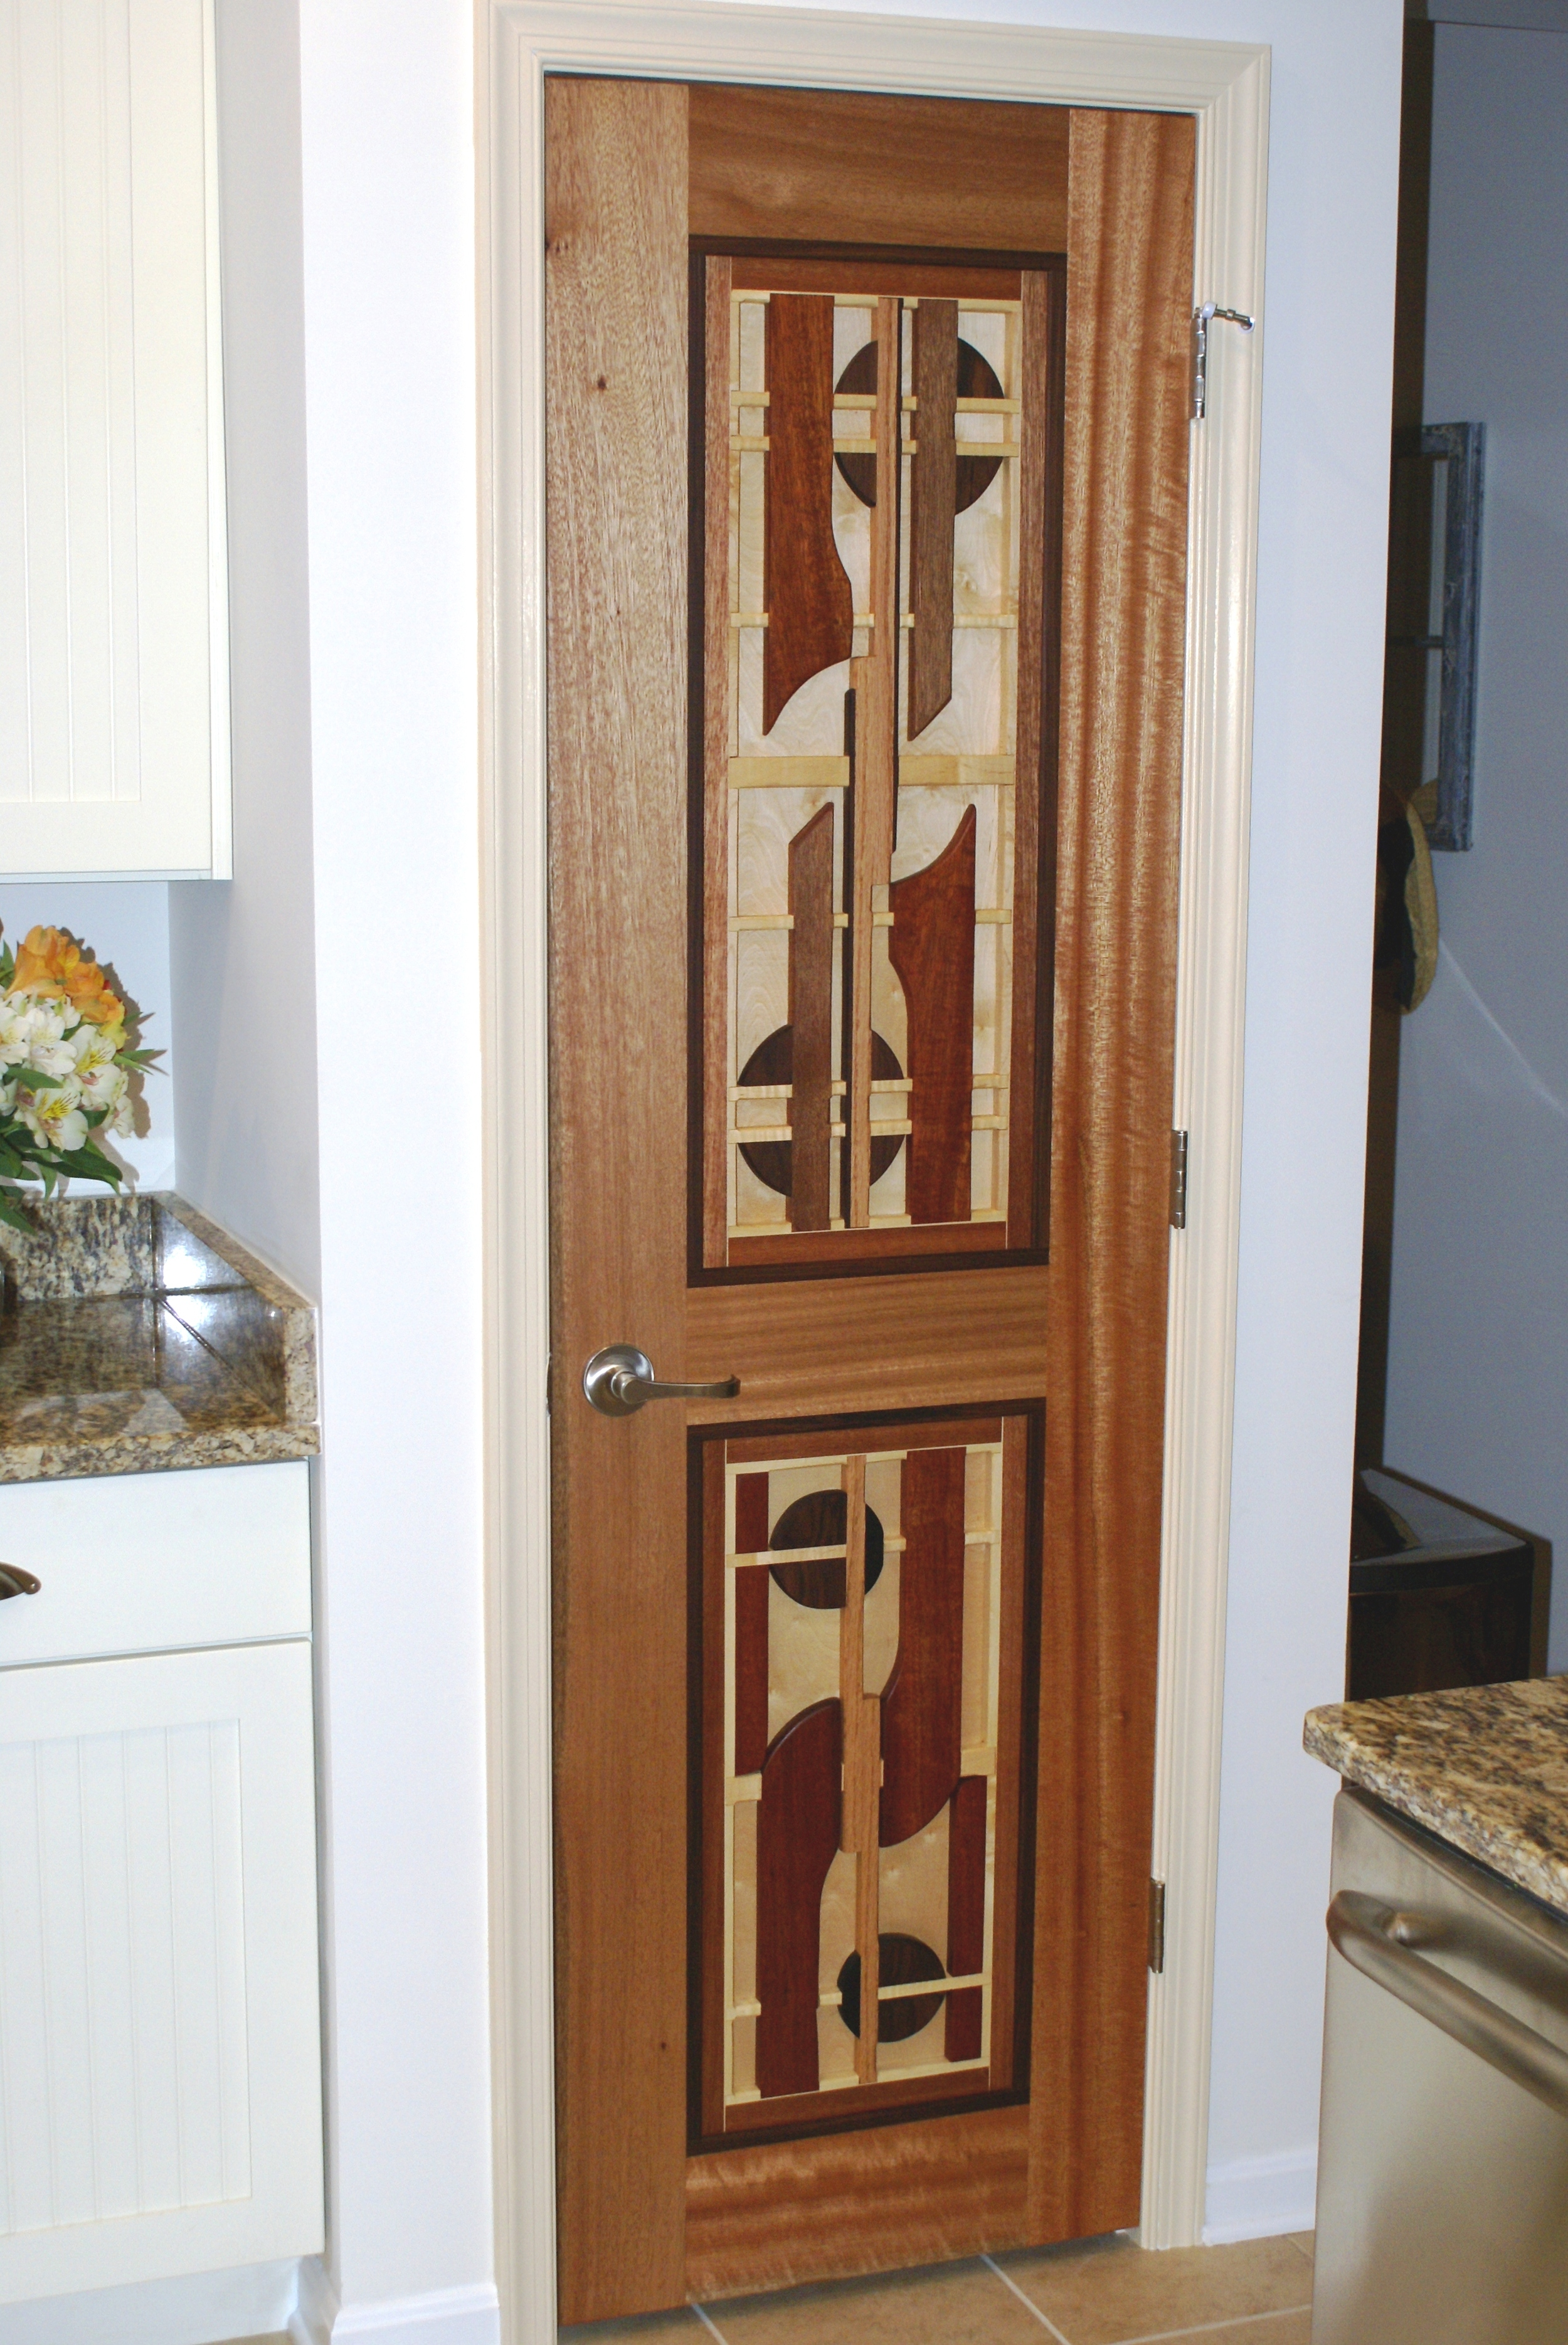 Mahogany Pantry Door (Sparrow Design) with Maple Backing